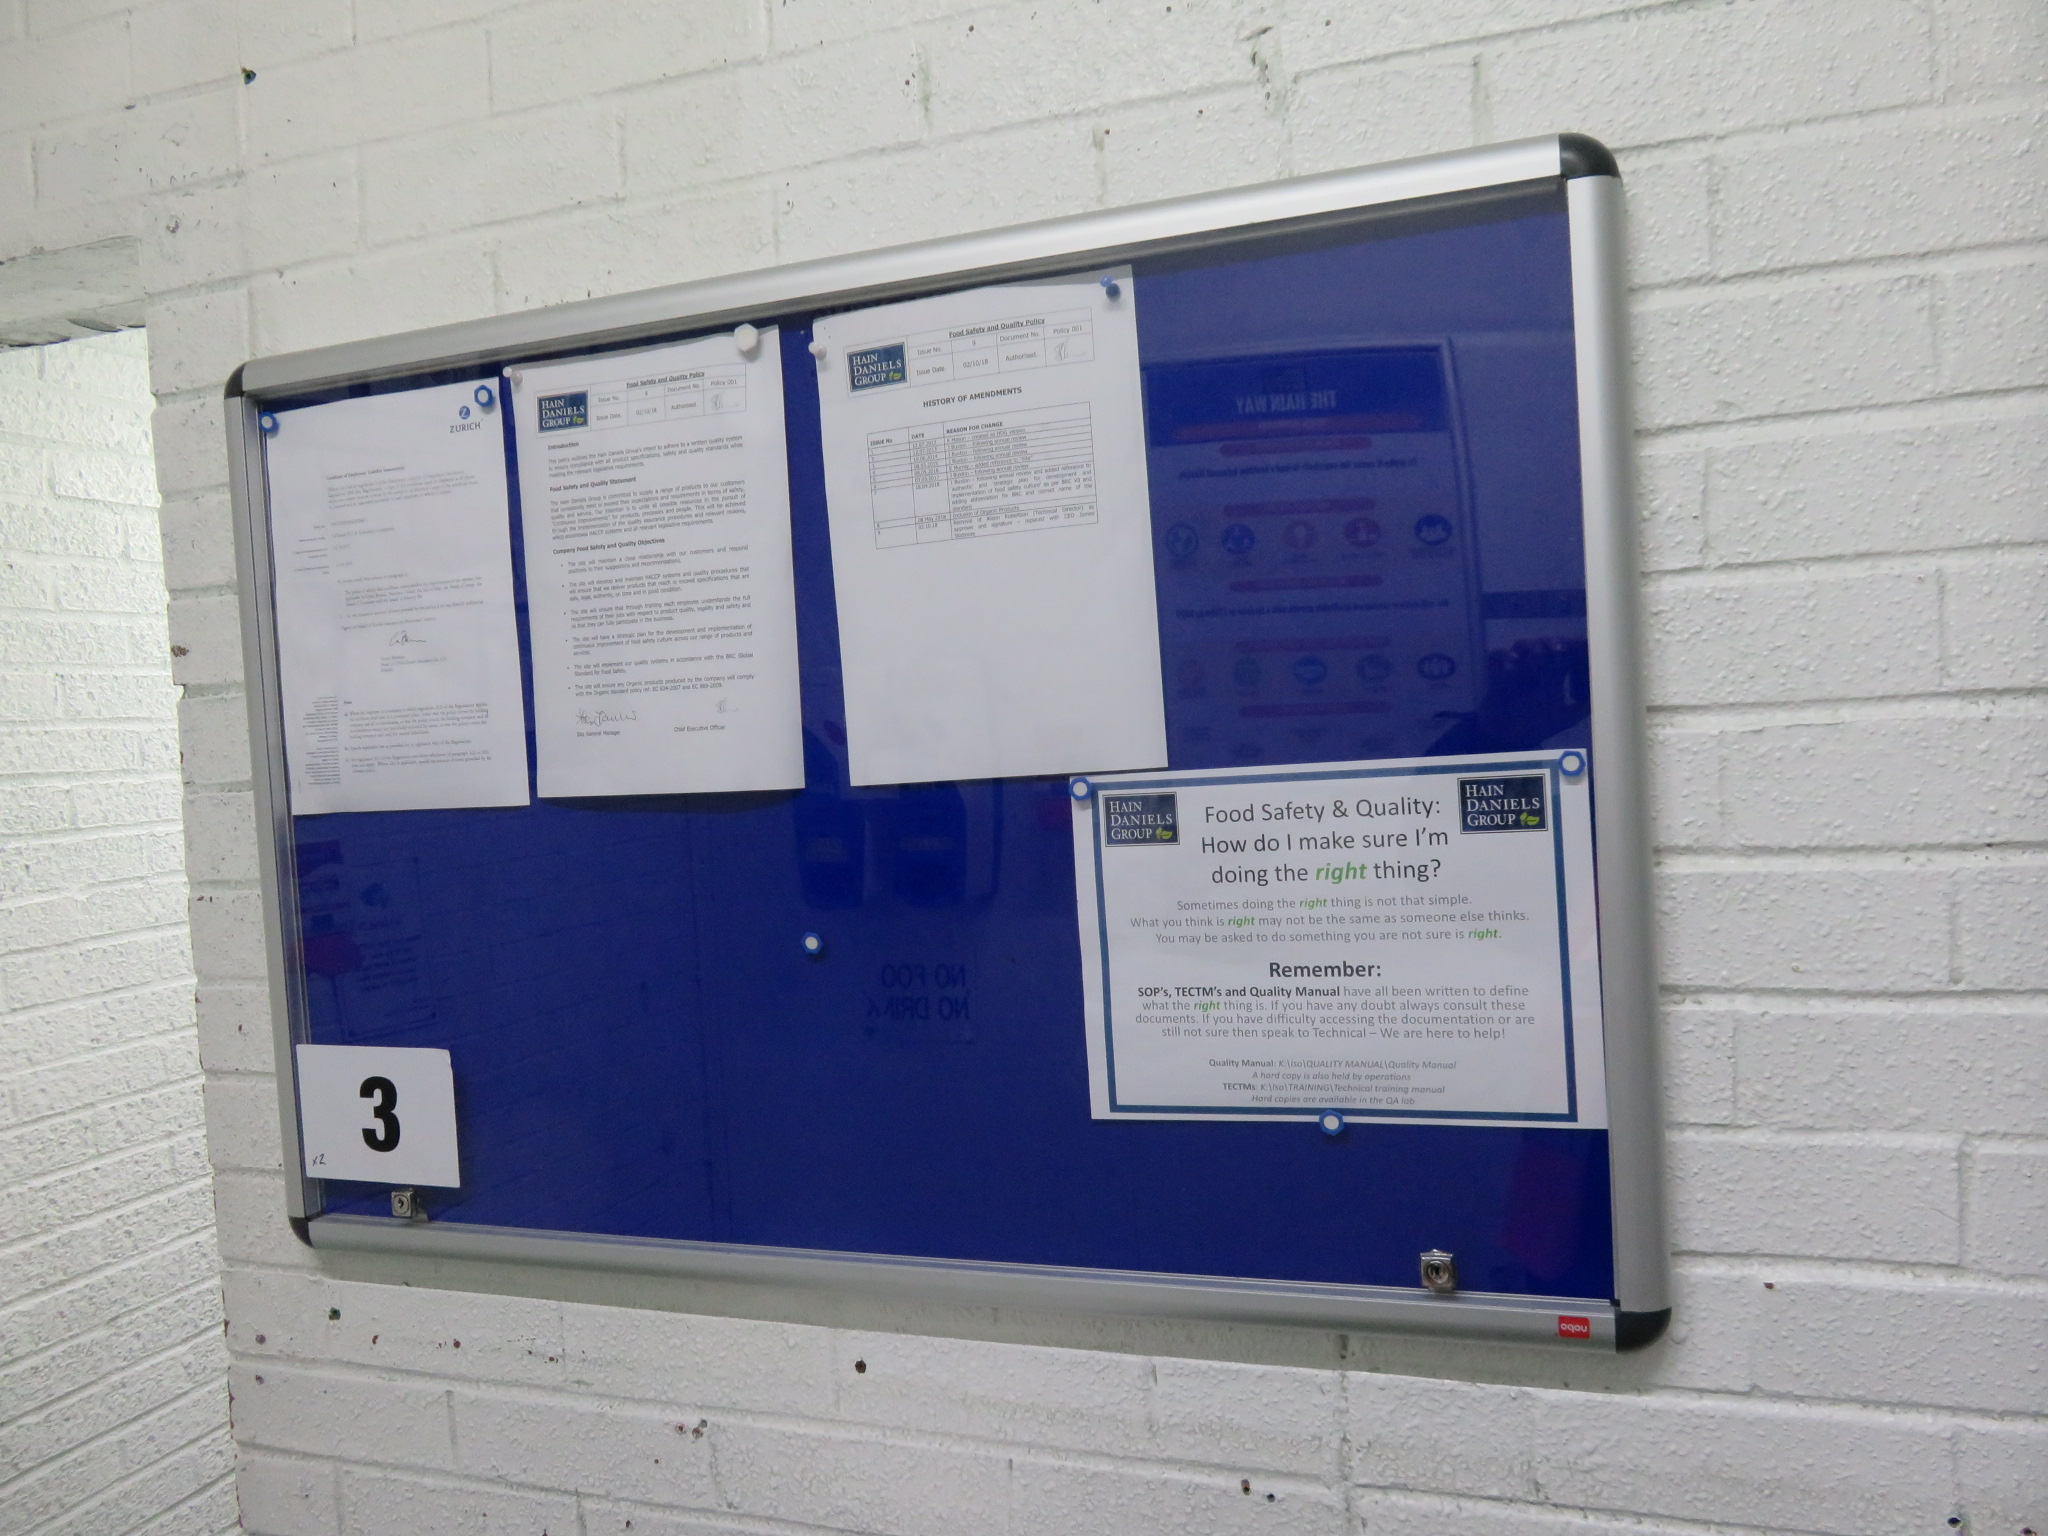 Lot 3 - 2 x Wall mounted Display Boards glass fronted. Approx. 950 x 650mm high and 1200 x 900. Lift out £10